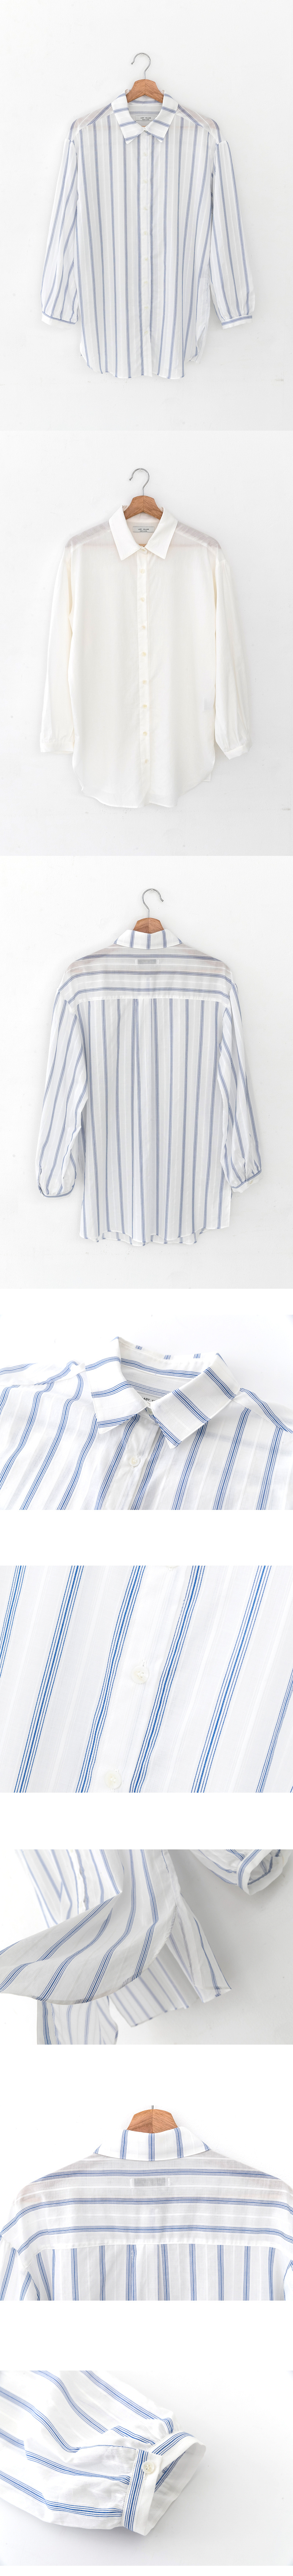 레이디 볼륨(LADY VOLUME) see-through blouse_stripe